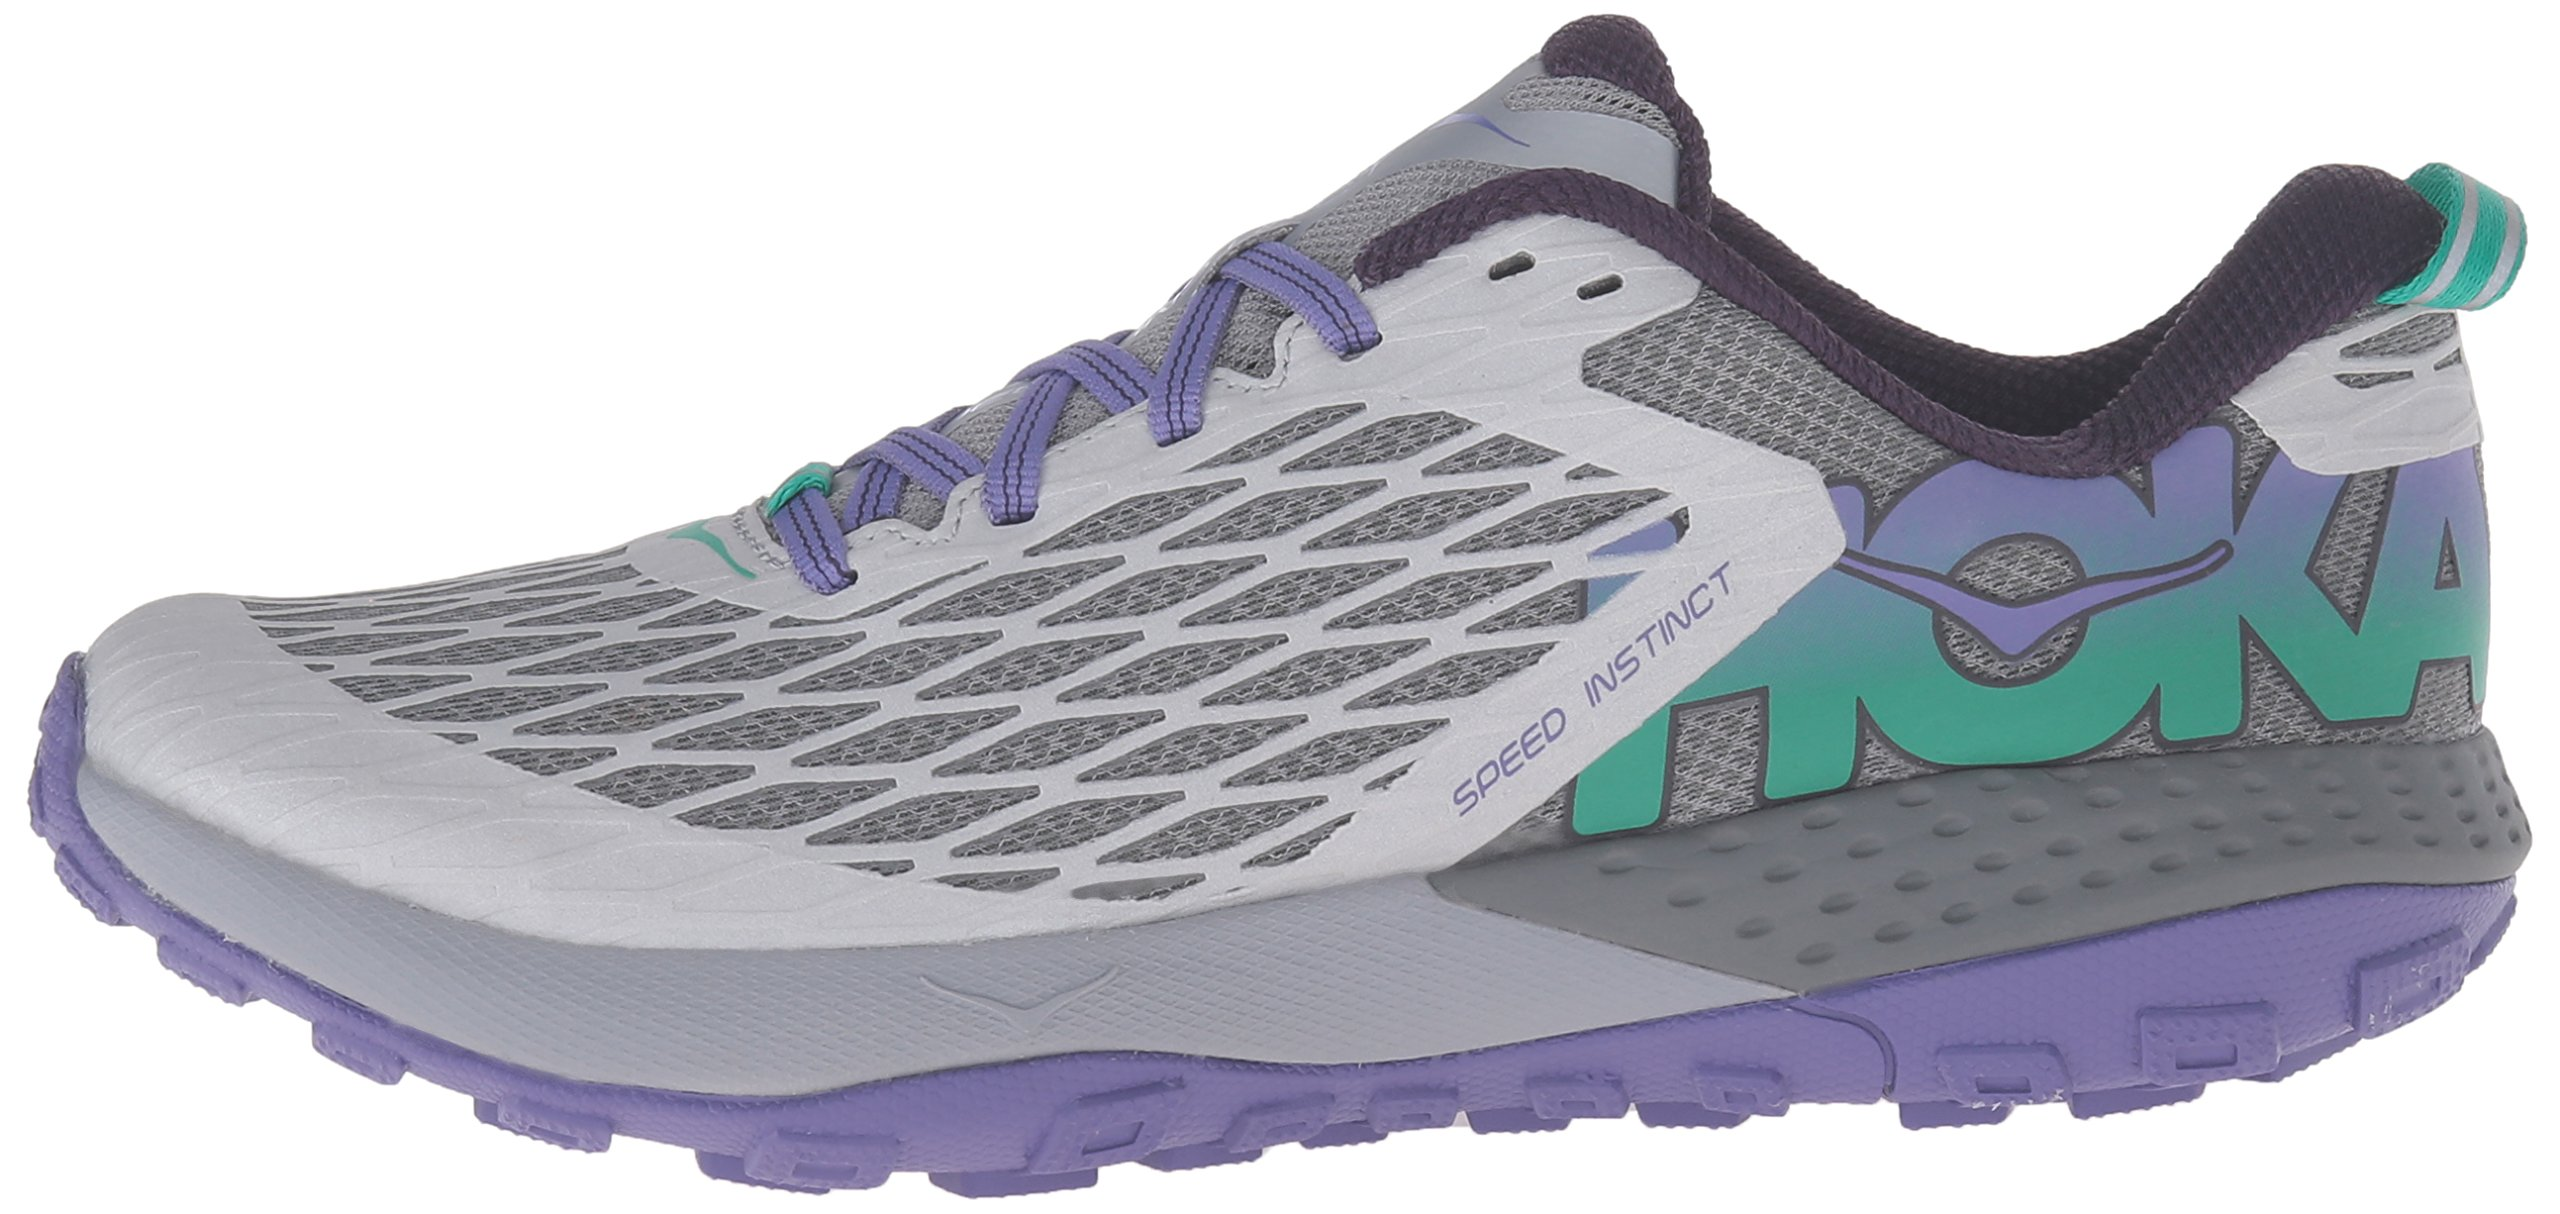 81PaaBRO1bL - HOKA One One Speed Instinct - W -